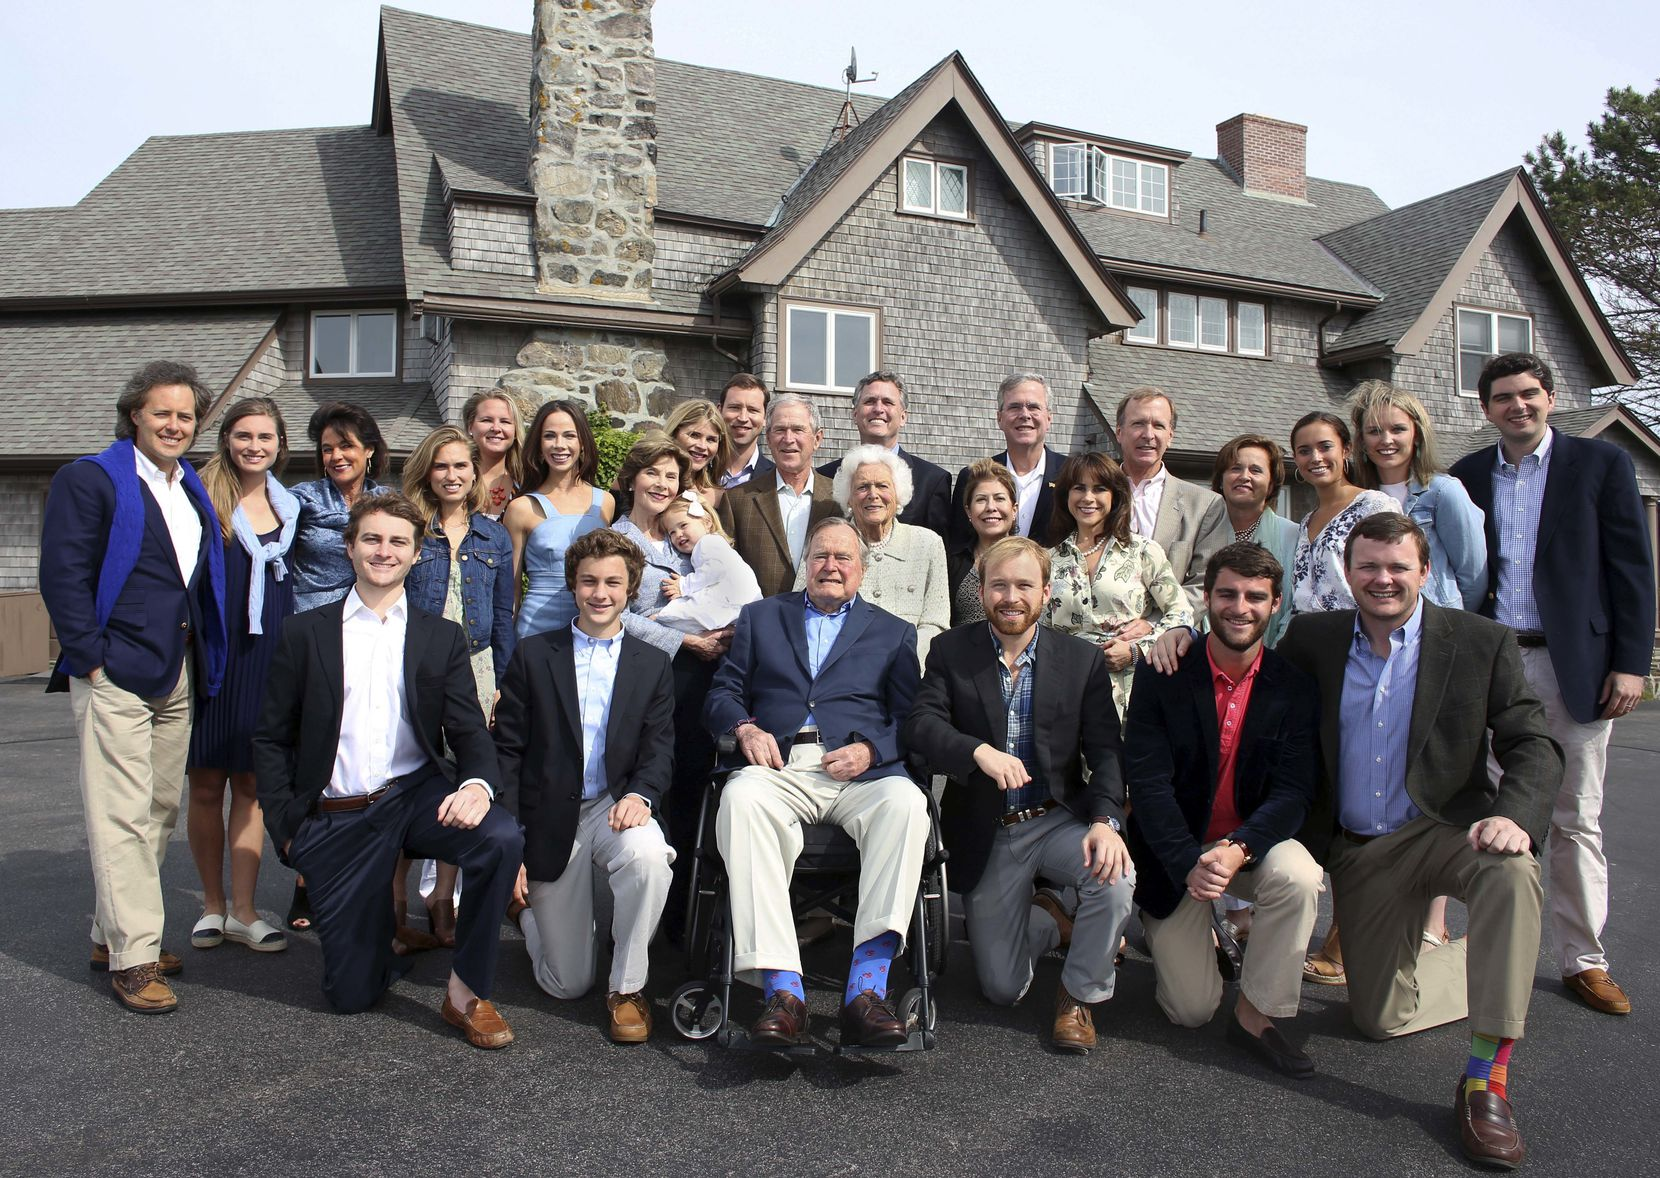 The Bush family poses for a photo in June 2015 at the family estate in Kennebunkport, Maine. The family gathered for a gala planned to celebrate Barbara Bush's 90th birthday. Among those present were former President George H.W. Bush, former President George W. Bush, former Florida Gov. Jeb Bush, and their families.